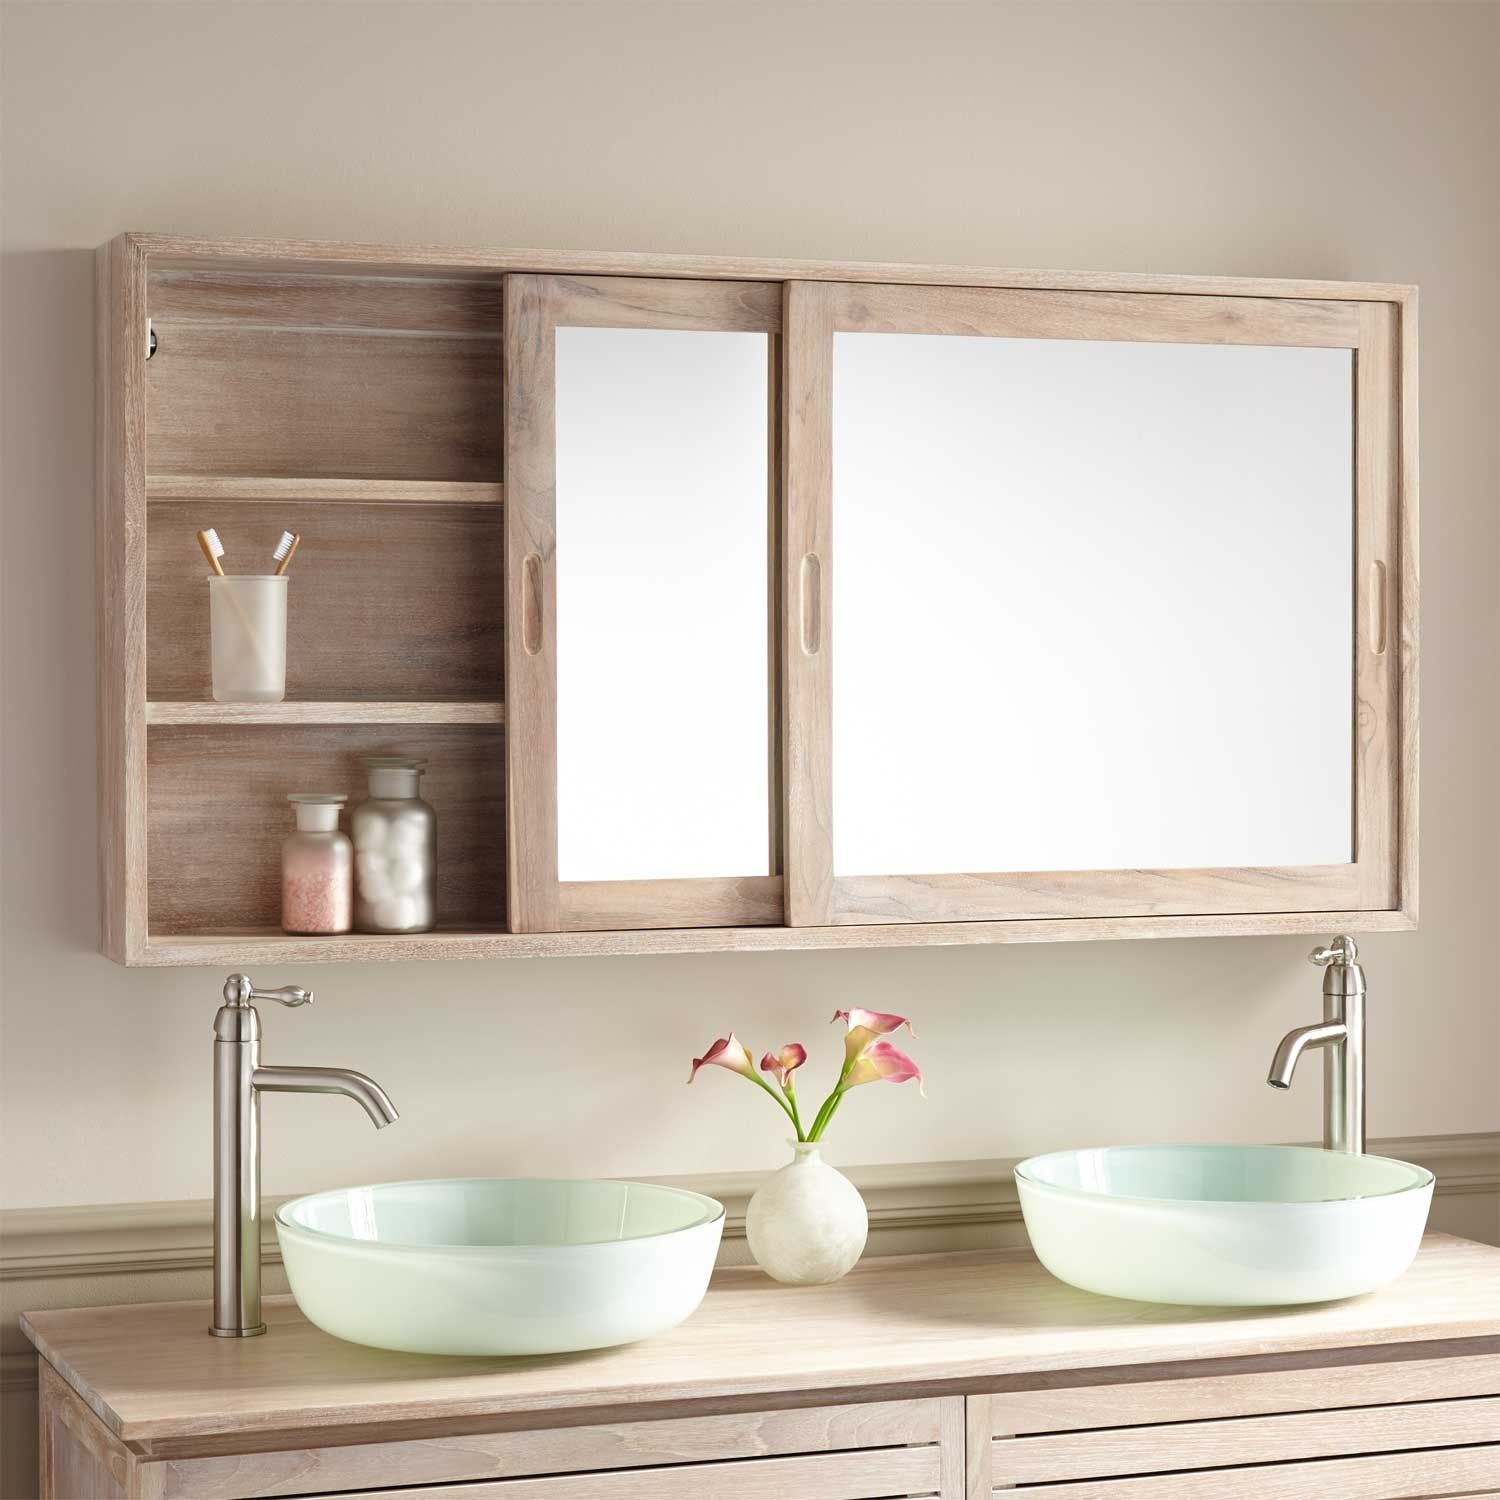 ideas light great product gallery grey default cabinet width oak bathroom gh imanisr remodel shaver socket and with lights cabinets vasari ouah excellent mirrored mirror